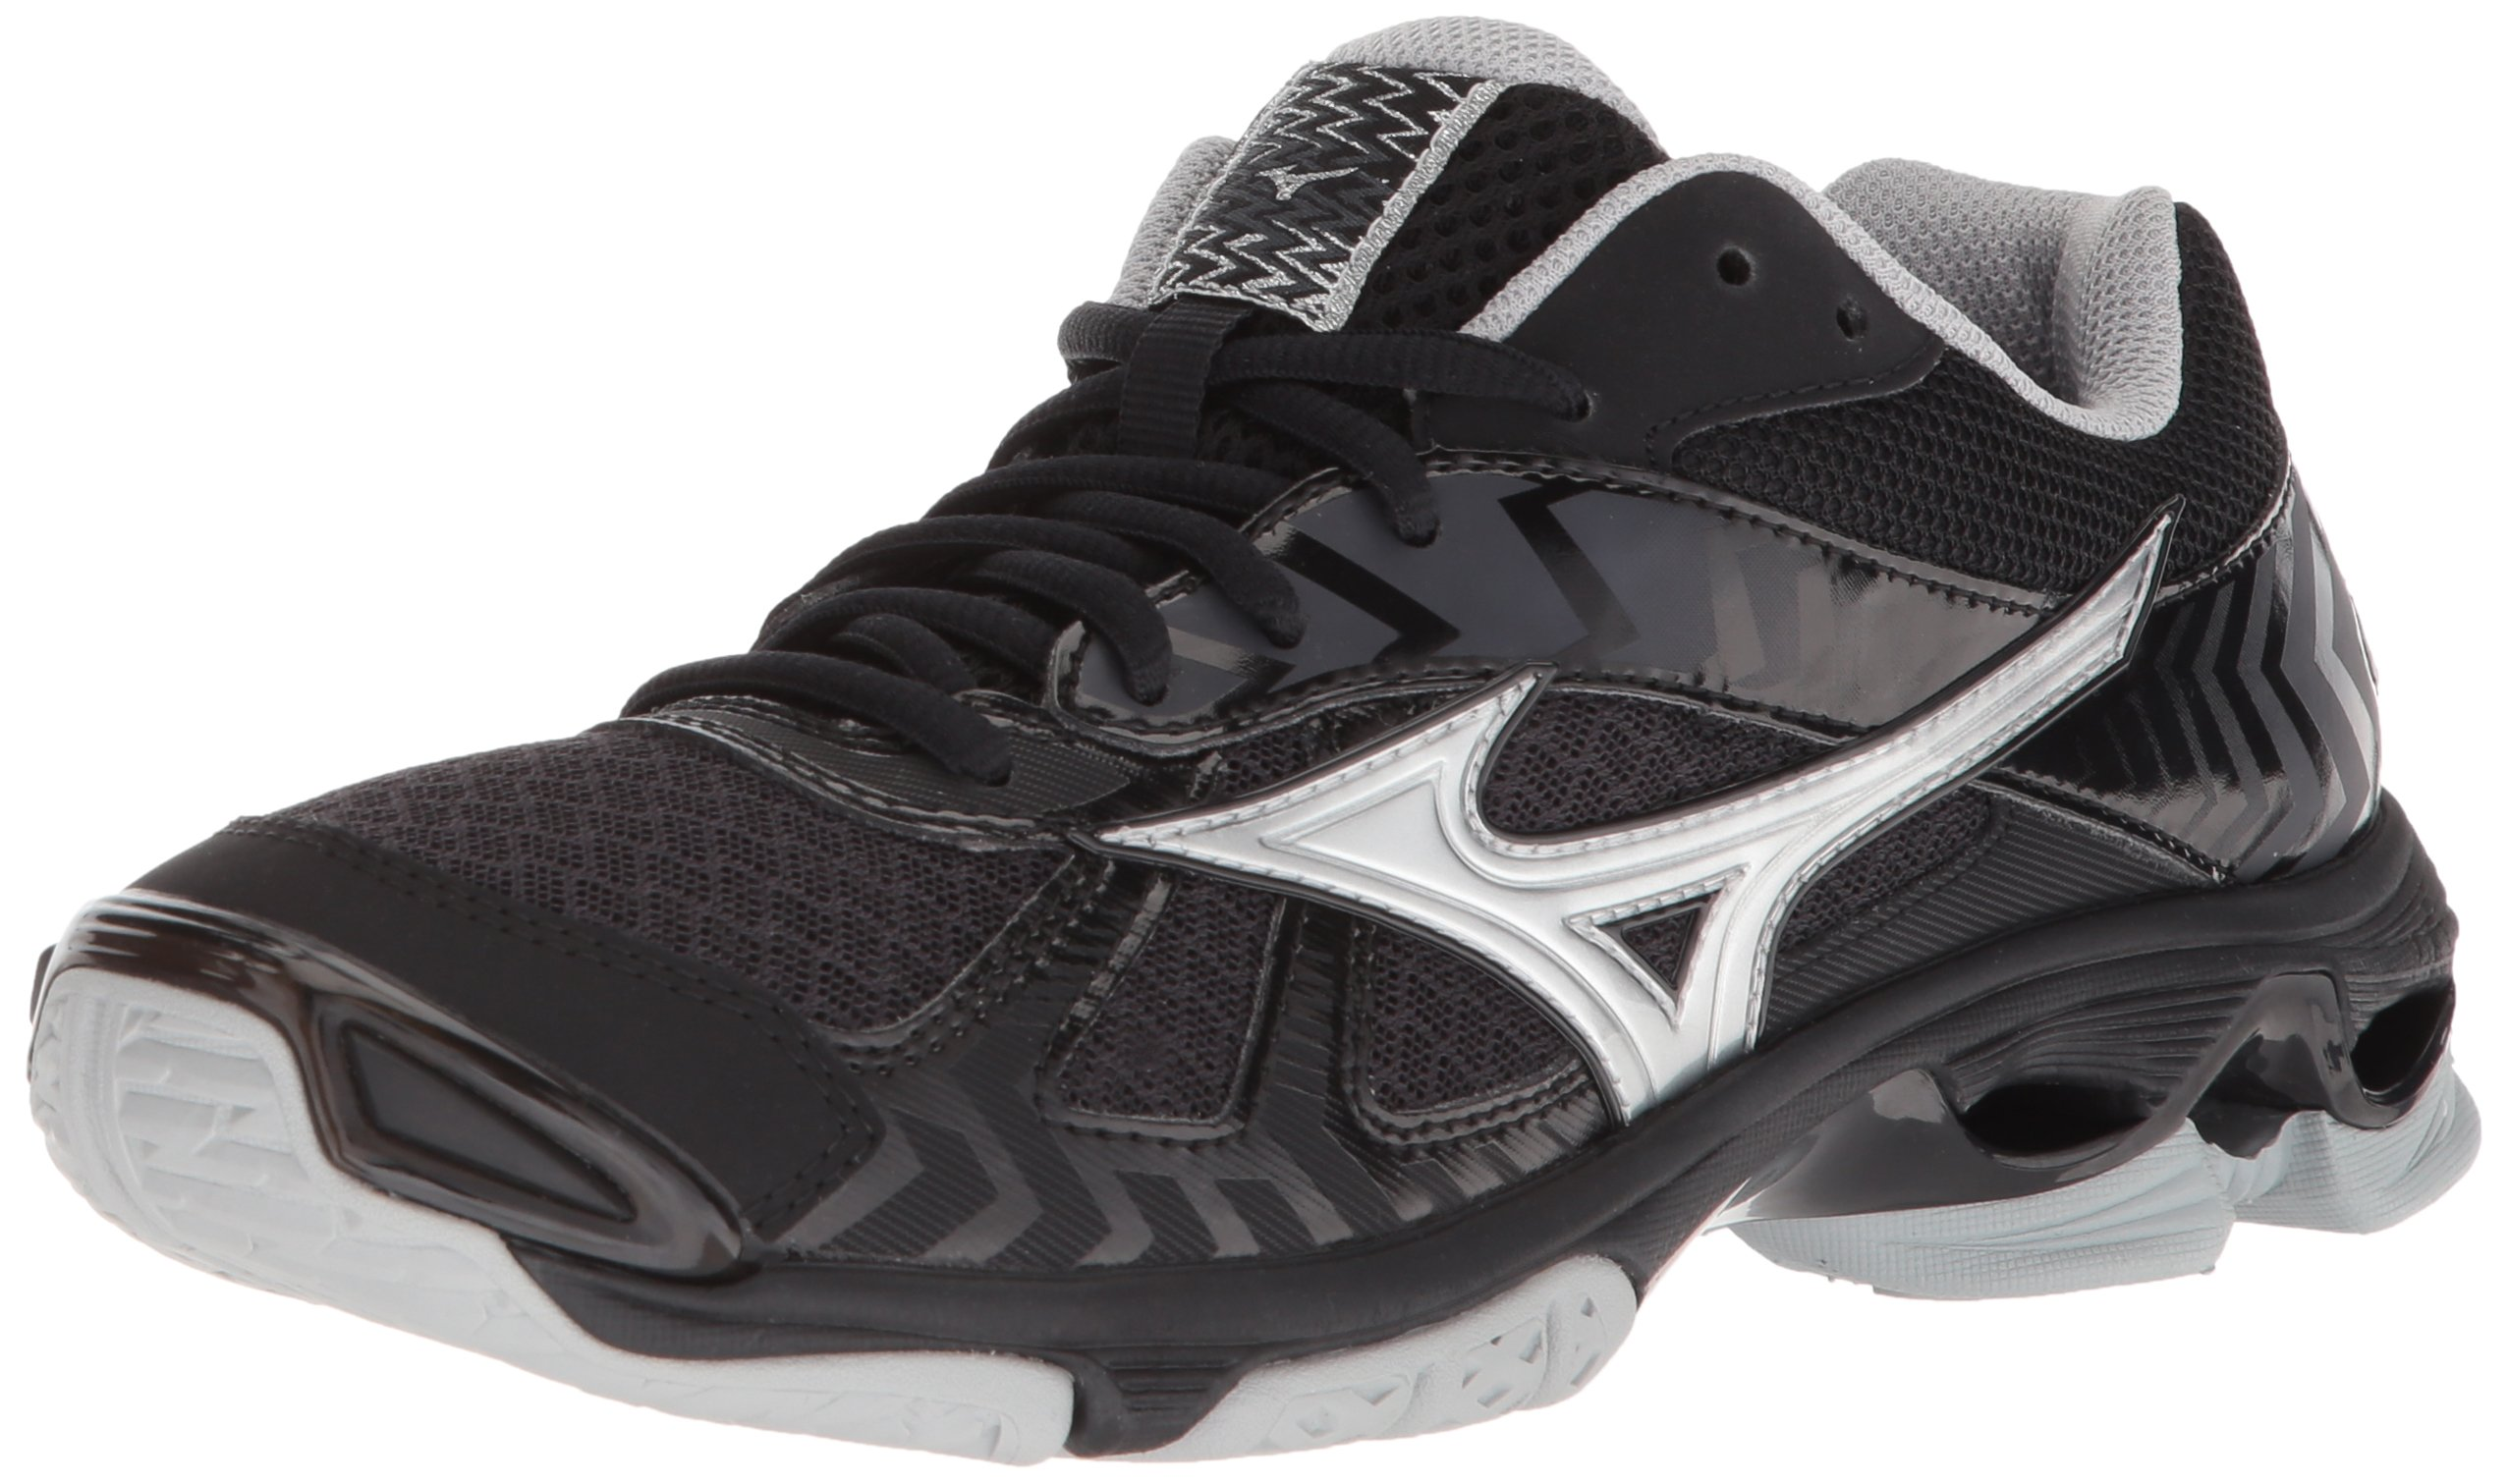 low priced 3d535 e5a26 Mizuno Women s Wave Bolt 7 Volleyball Shoes product image